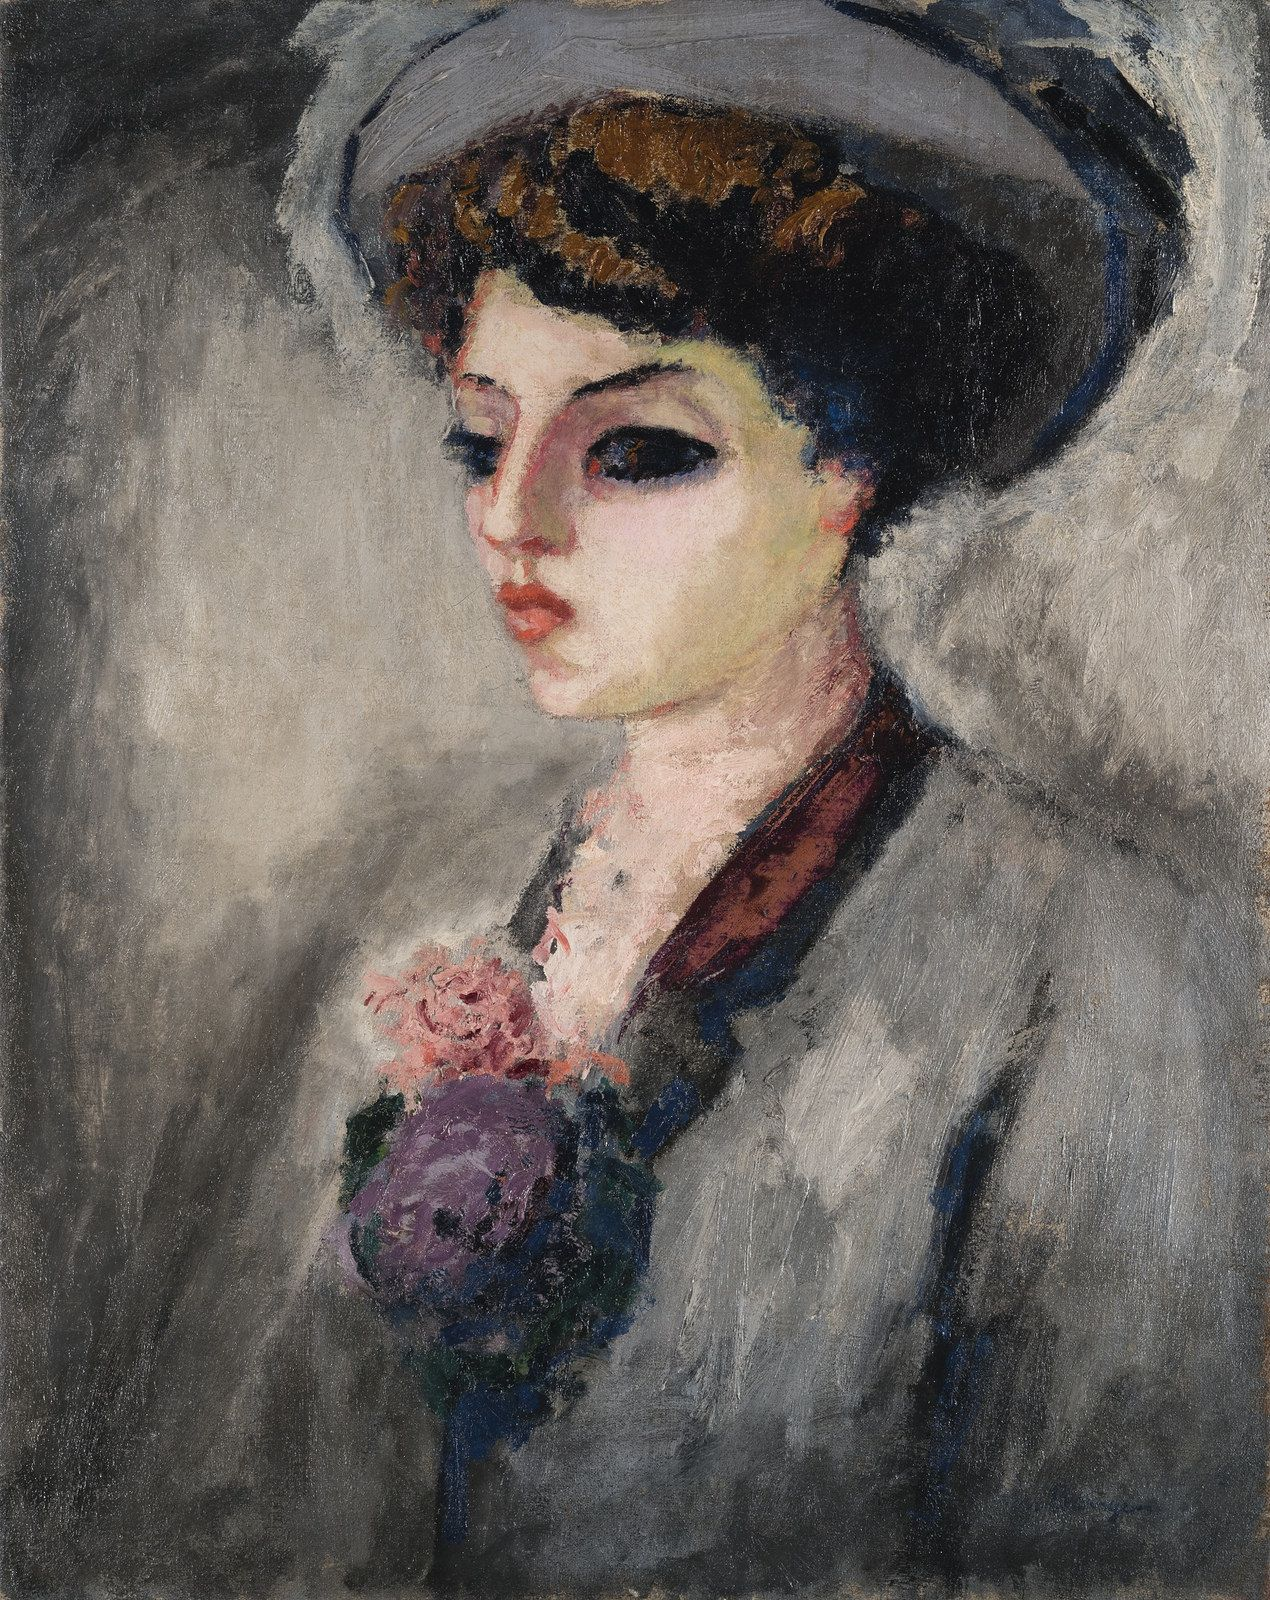 https://flic.kr/p/SLgMmc | Kees van Dongen - Femme au chapeau (Portrait de Madame Charles Malpel) [c.1907-08] | This major portrait was painted at a time of recognition for Van Dongen. Following the scandal of his first Fauvist works exhibited at the Salon d'Automne in 1905, Van Dongen developed his style, modulating the chromatic violence of his first works. The paintings from 1907-10 are none the less marked by a radical modernity, as much in their palette as in their technique. As Apollin...